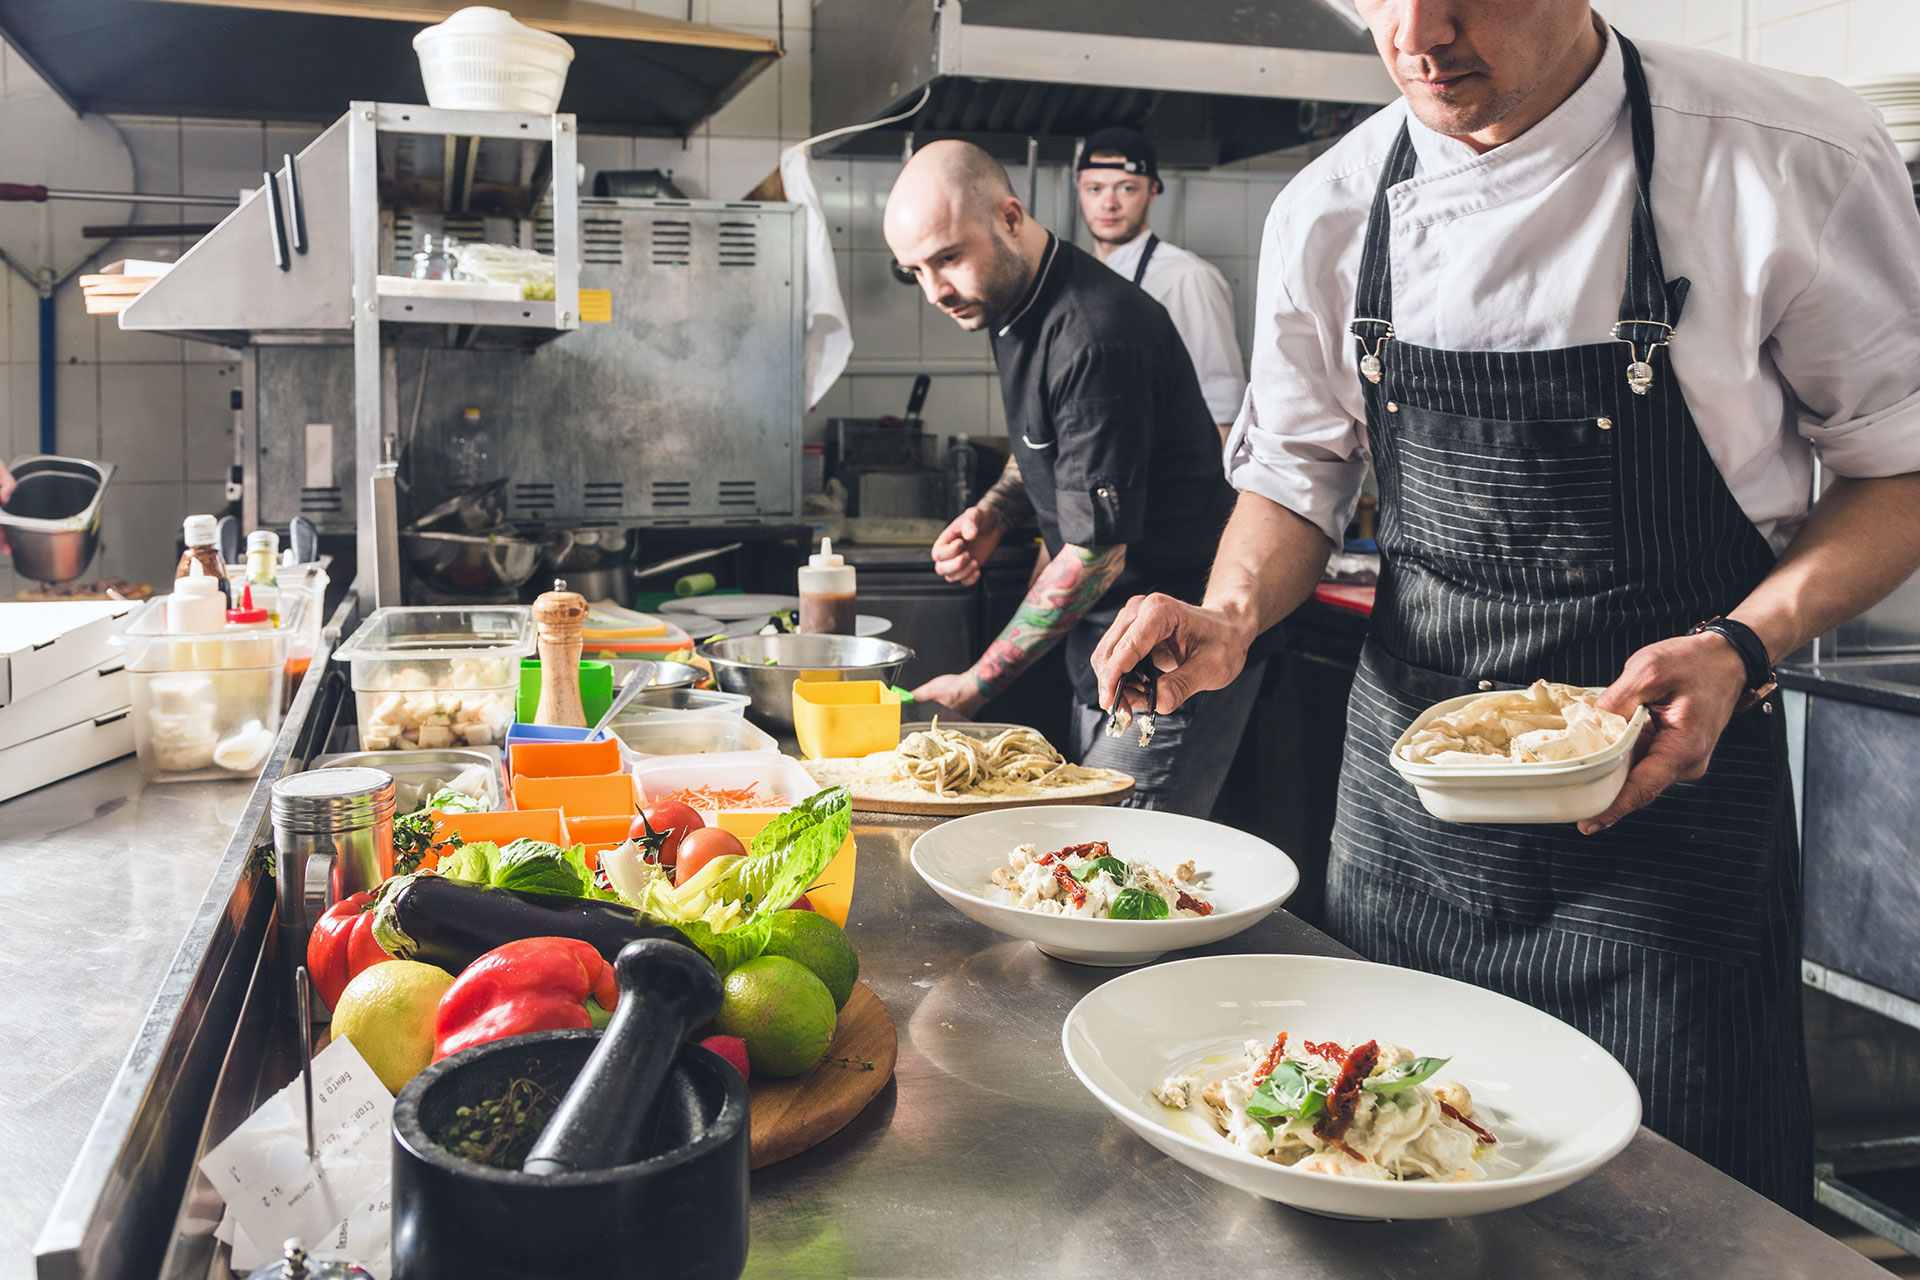 What are typical licensing requirements for new restaurants?